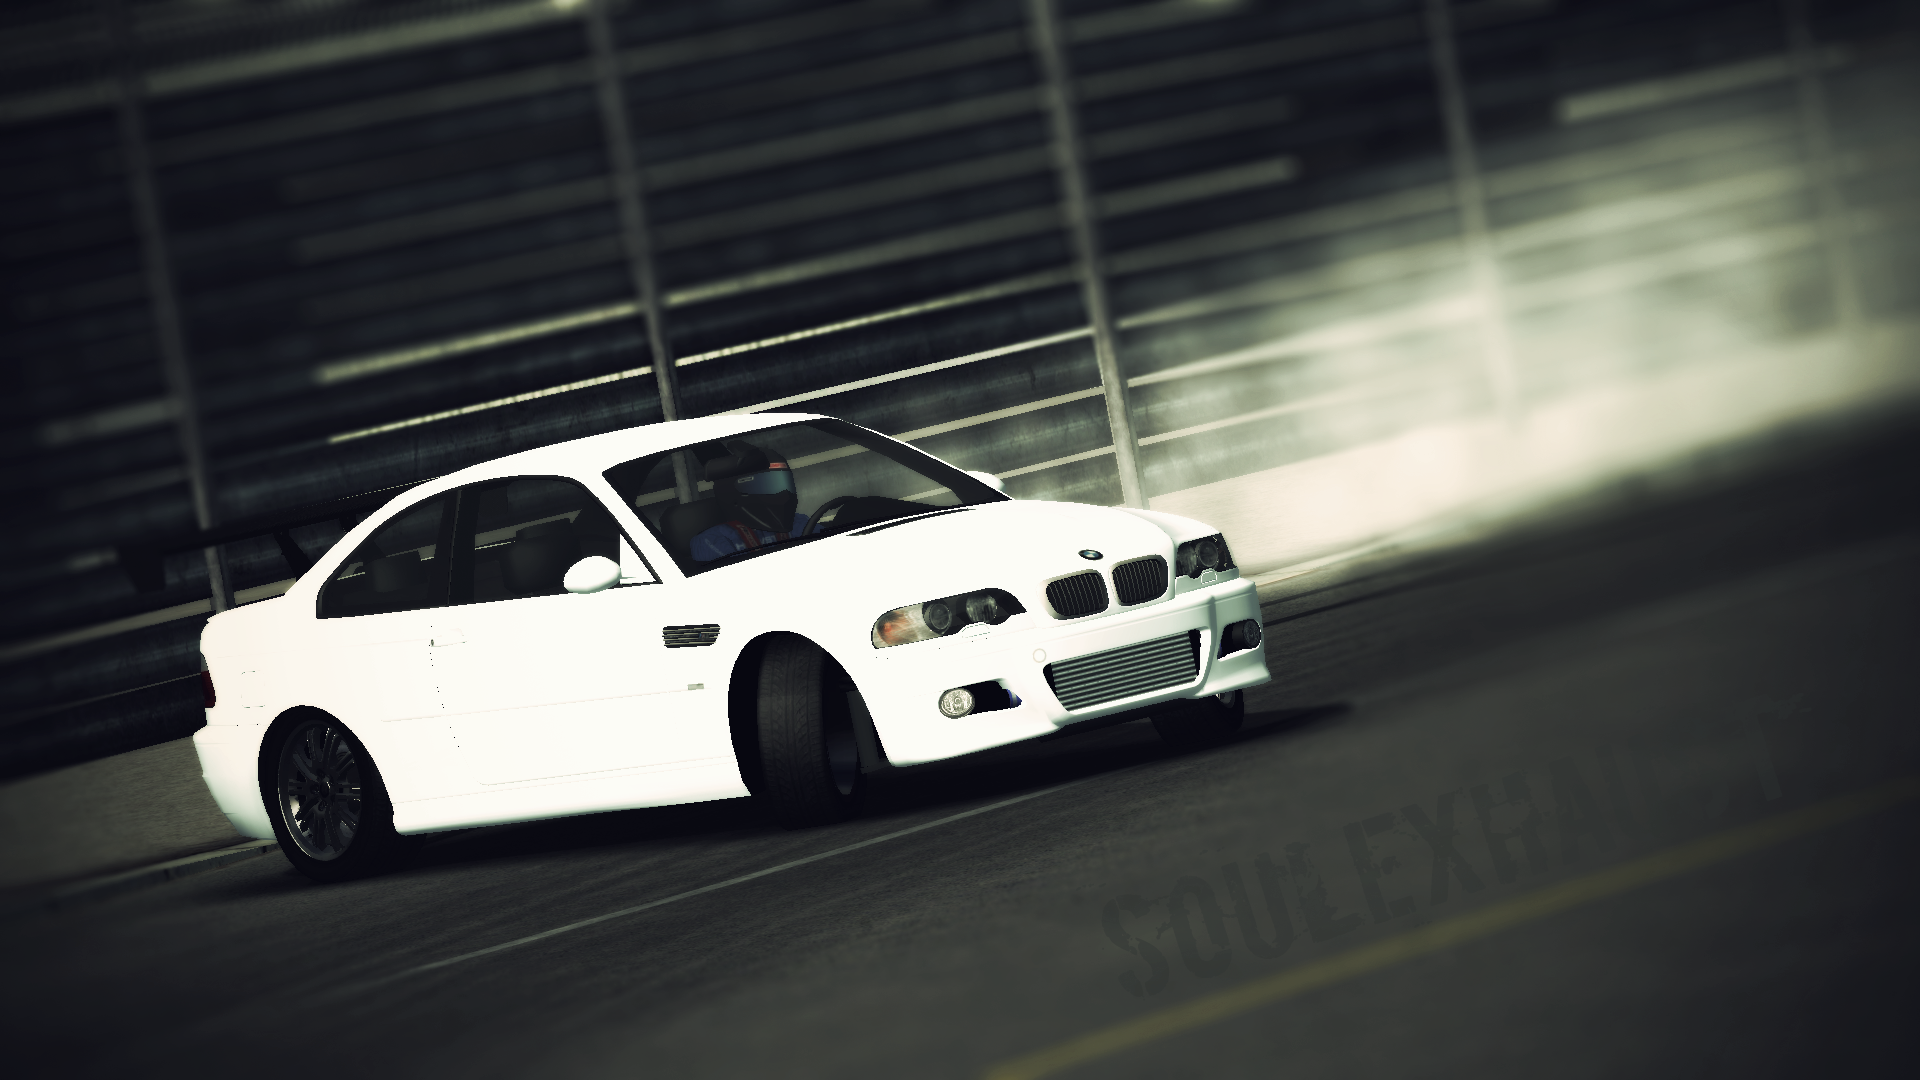 rFactor Drift | Bimmer, sideways! | E46 Preview - Soul Exhaust